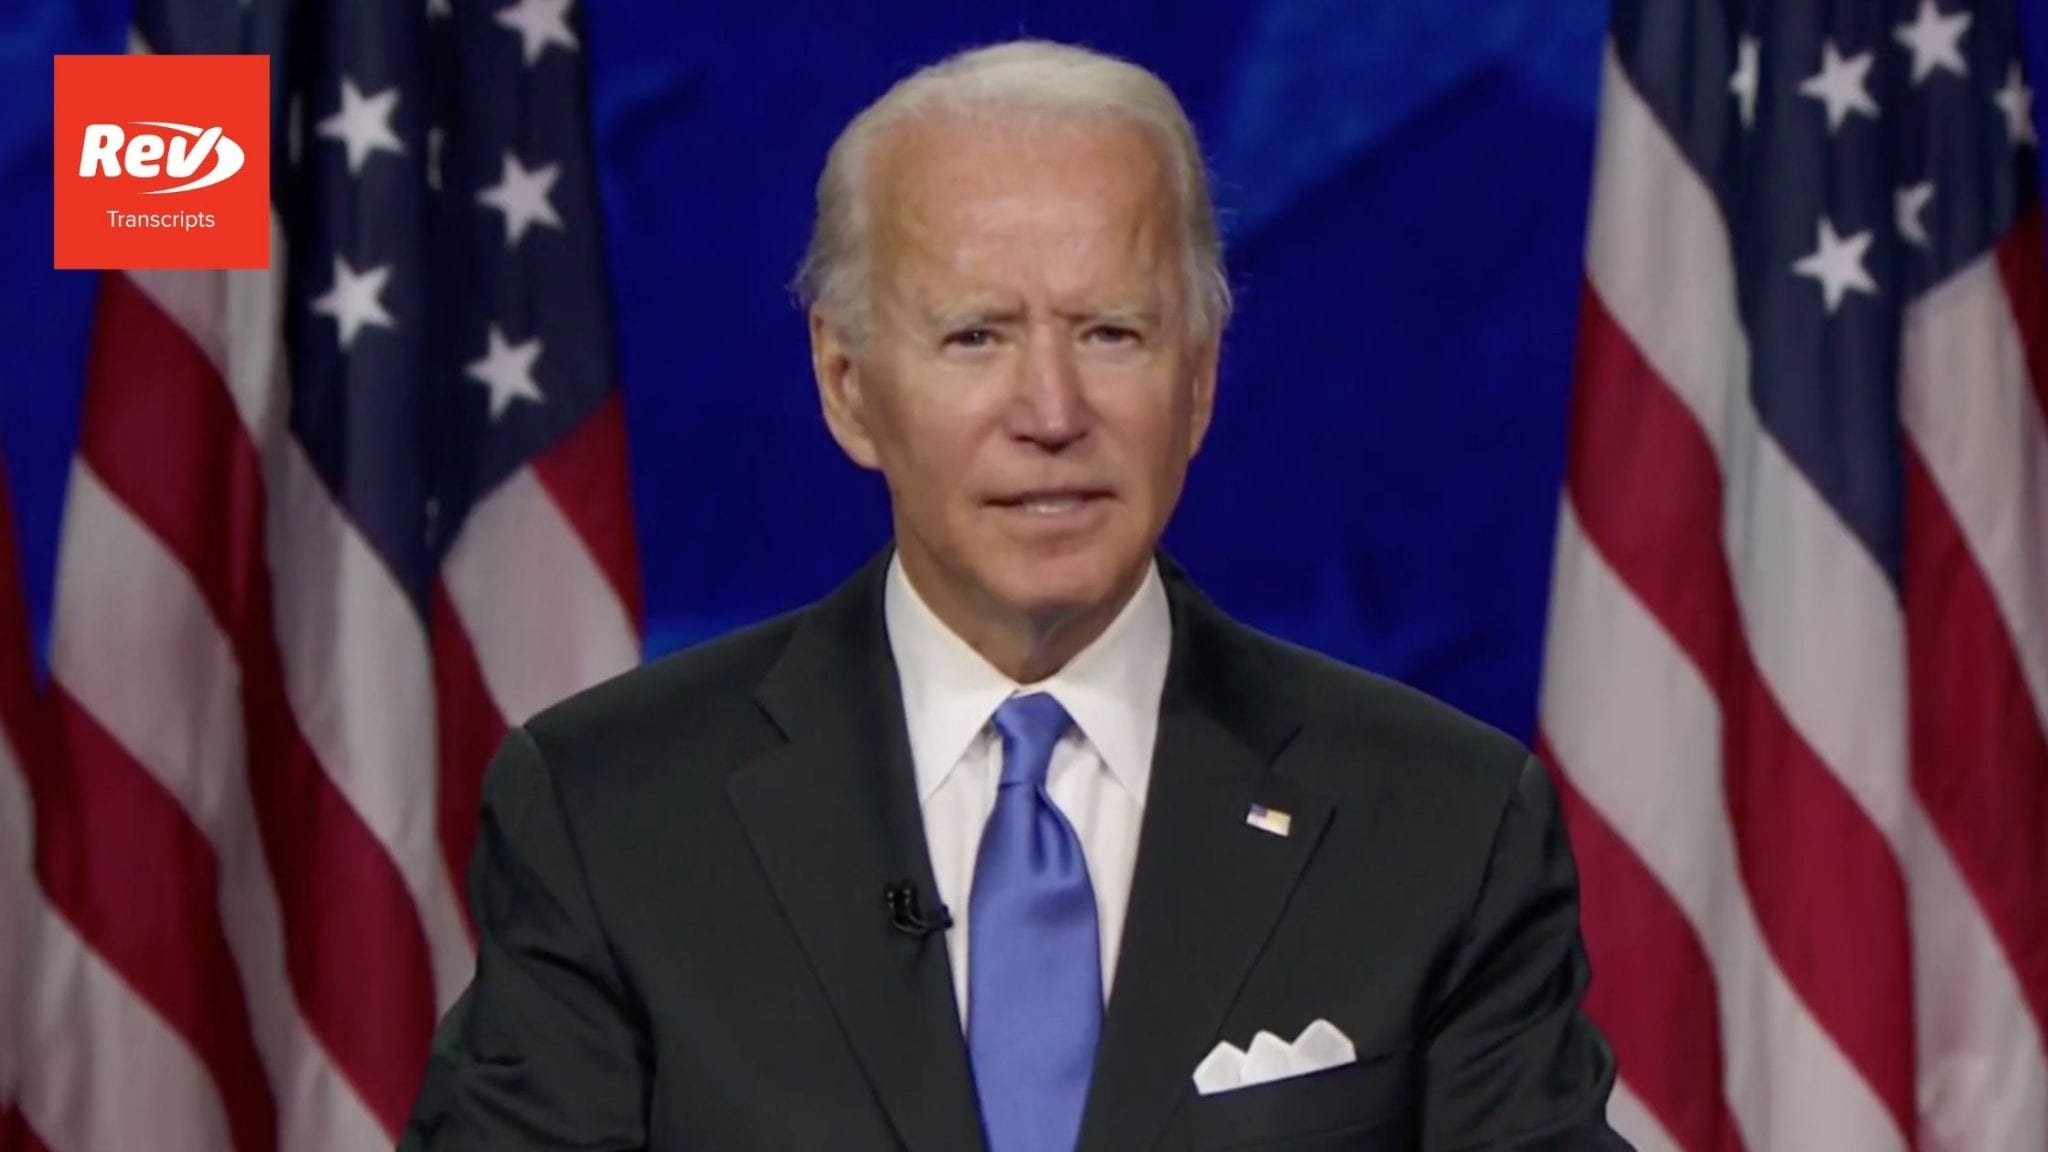 Joe Biden 2020 DNC Speech Transcript